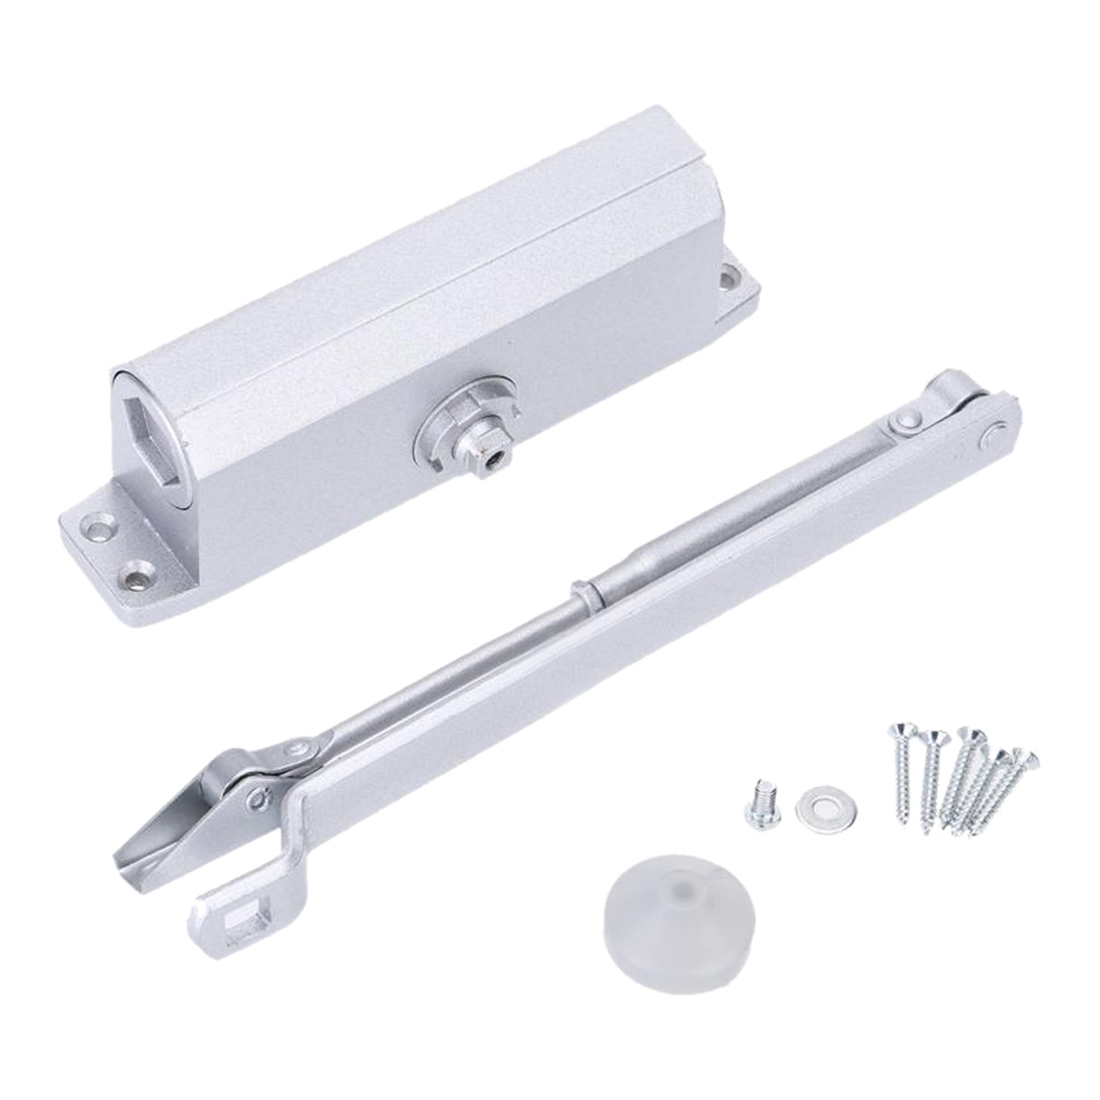 Aluminum Alloy 35kg Automatic Hydraulic Door Closer with Parallel Bracket E4I2 кресло качалка dondolo mebelvia